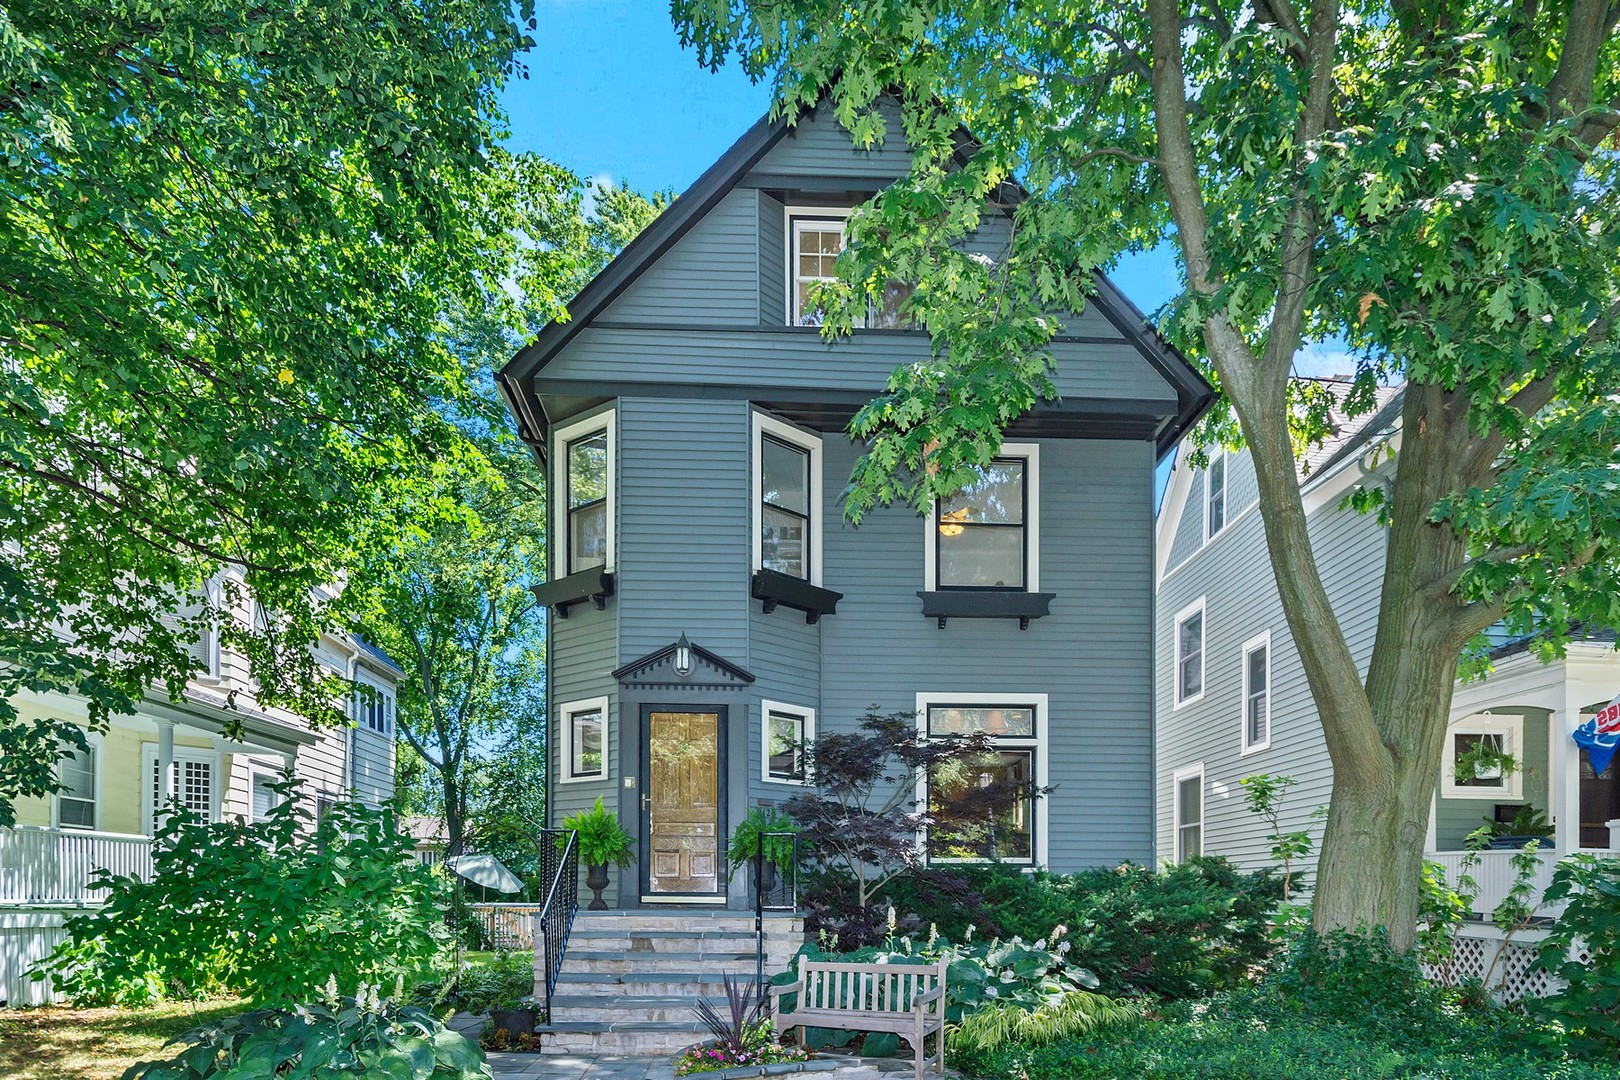 2125 Sherman Avenue 60201 - One of Evanston Homes for Sale